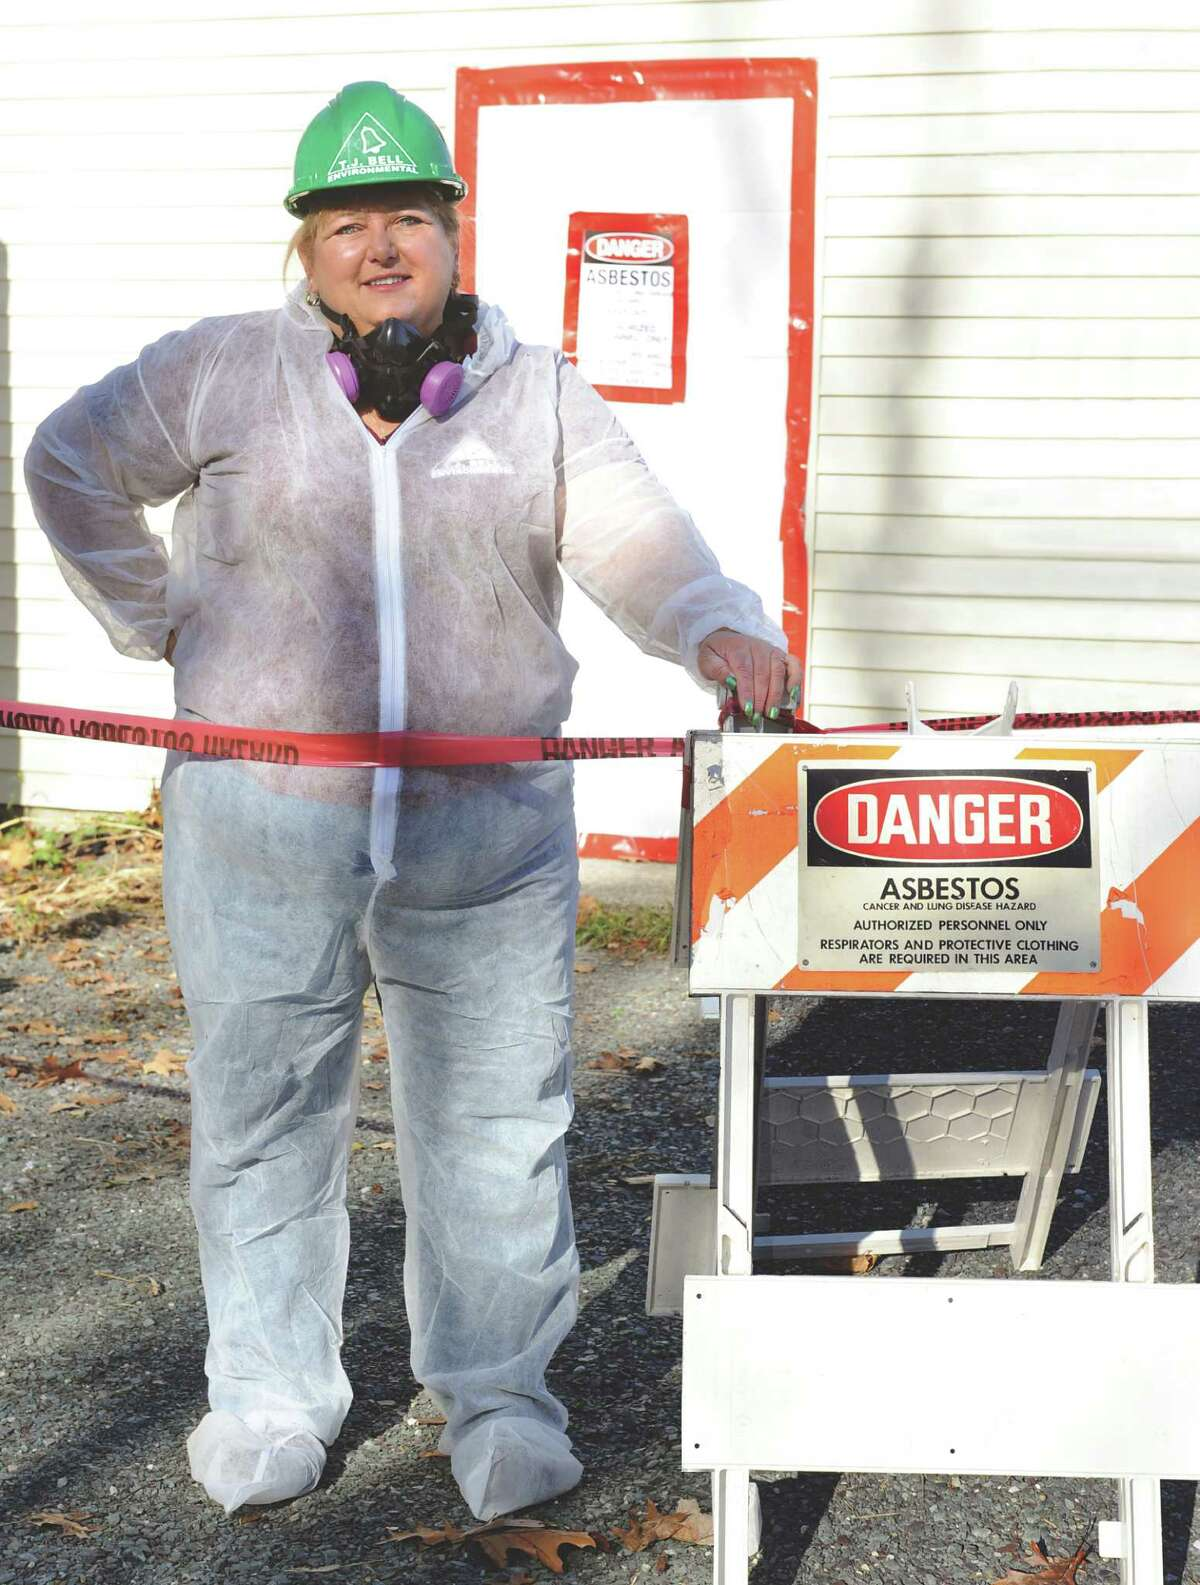 Suzanne Bell owner of T.J. Bell Environmental, on Tuesday, Nov. 17, 2015, in Averill Park, N.Y. (Cindy Schultz / Times Union)